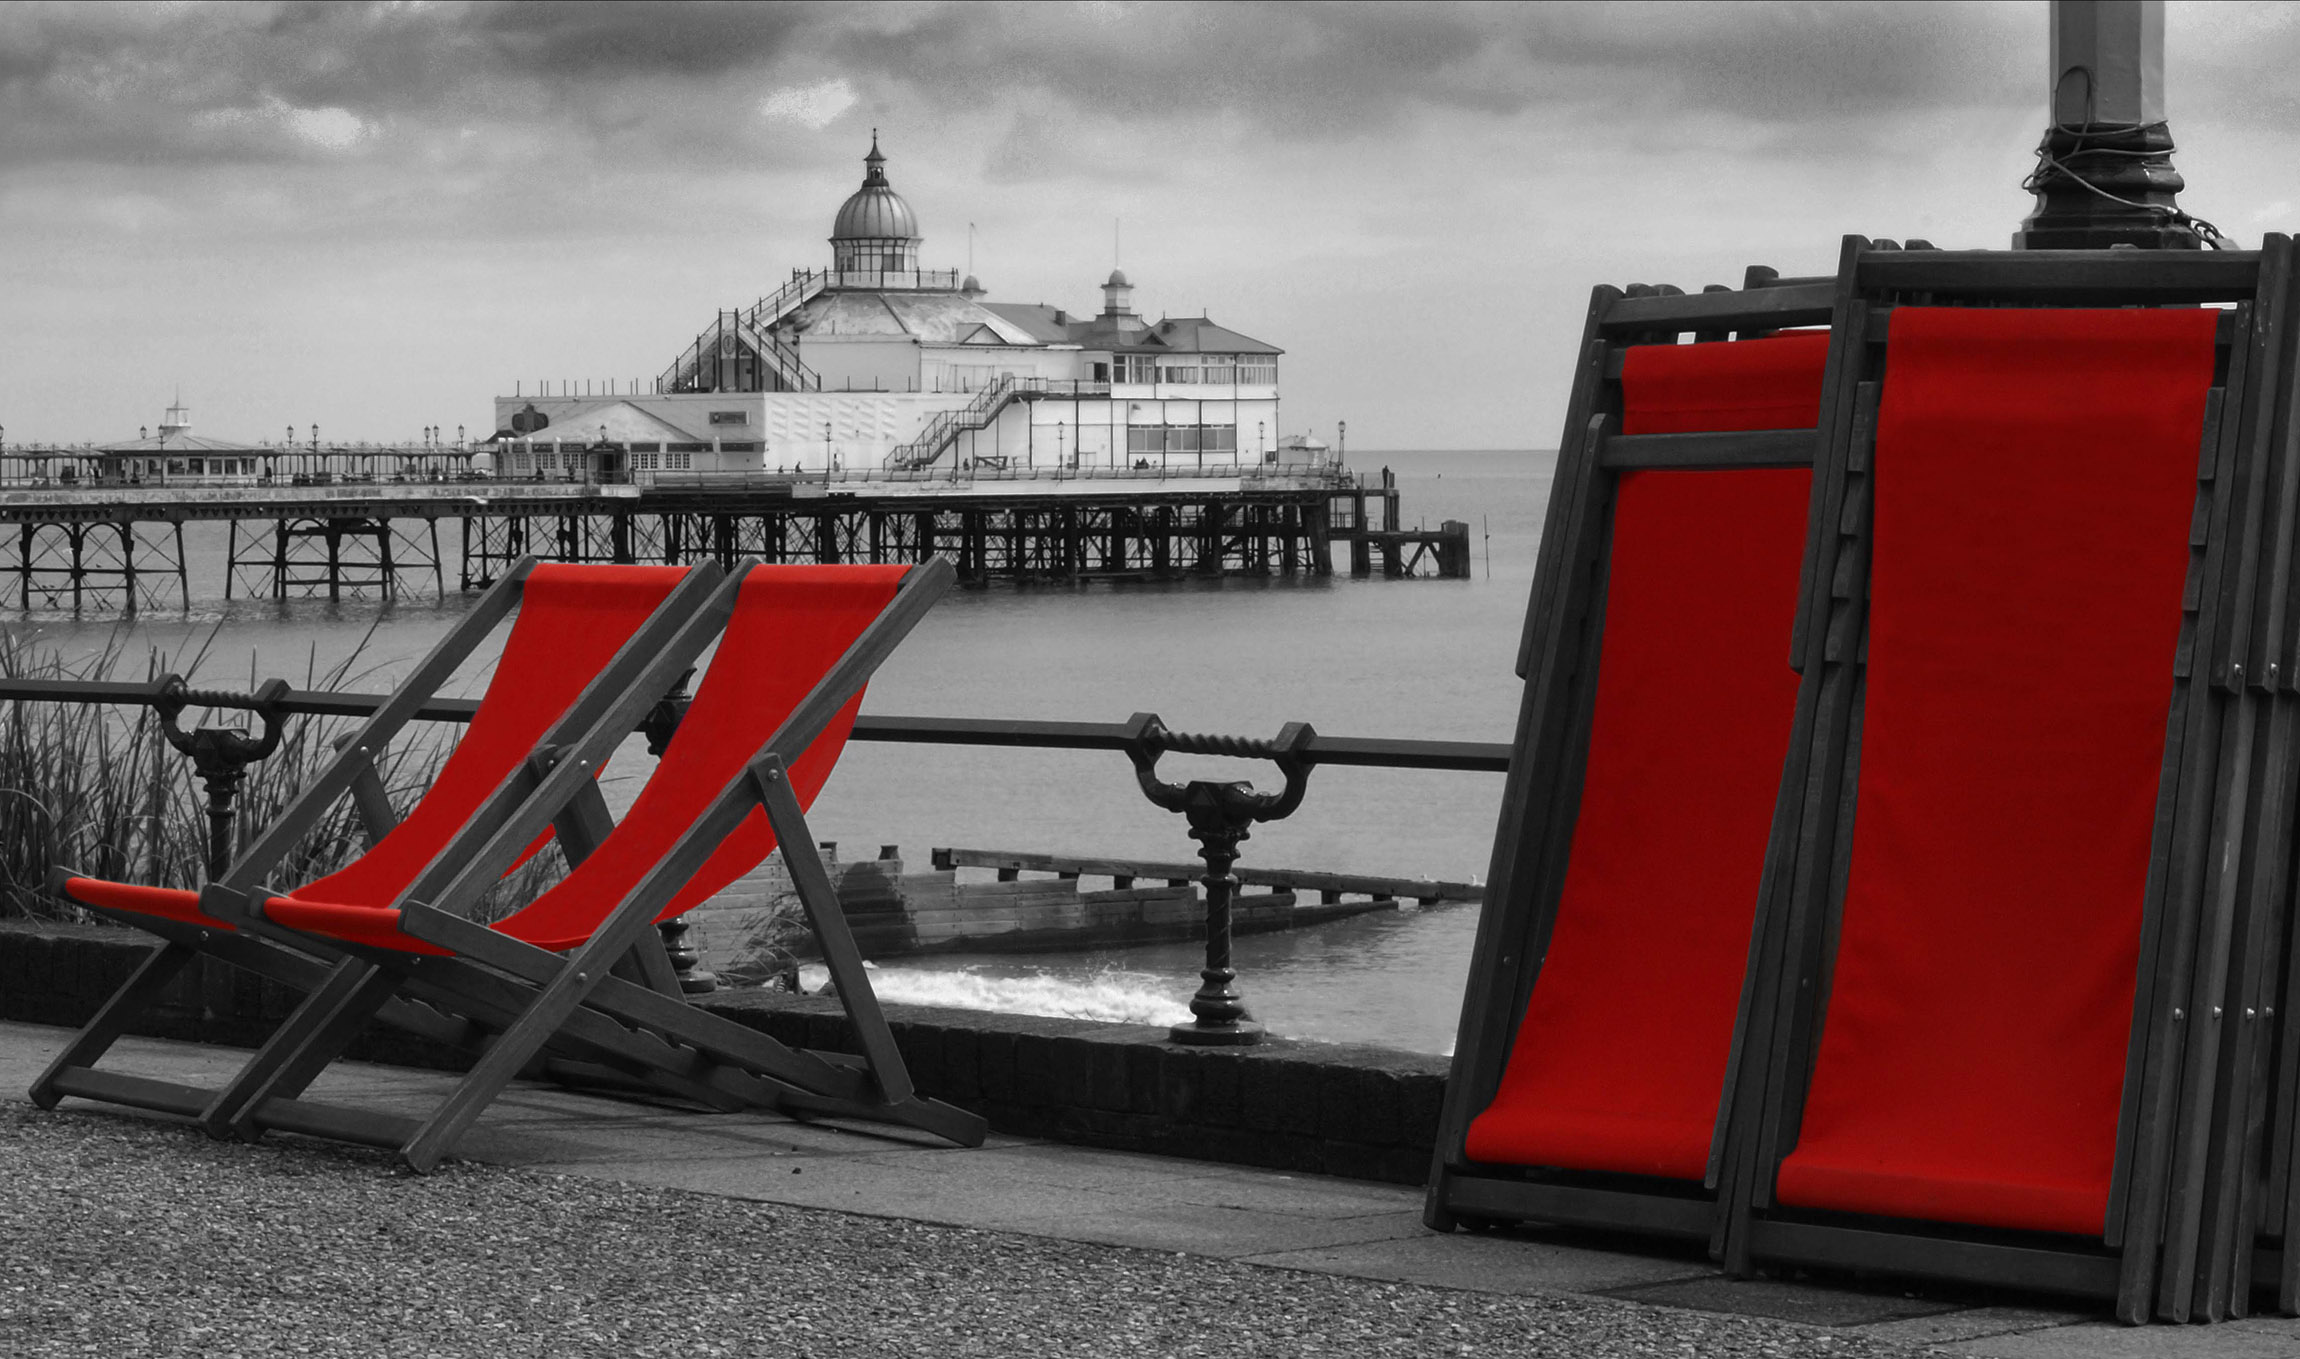 Enhanced black and white photograph of Eastbourne pier in the centre with a foreground of the promenade, two deckchairs ready for seating and several stacked deckchairs. All deckchair covers are picked out in blood red. © Copyright 2014 Andy Huntley photography